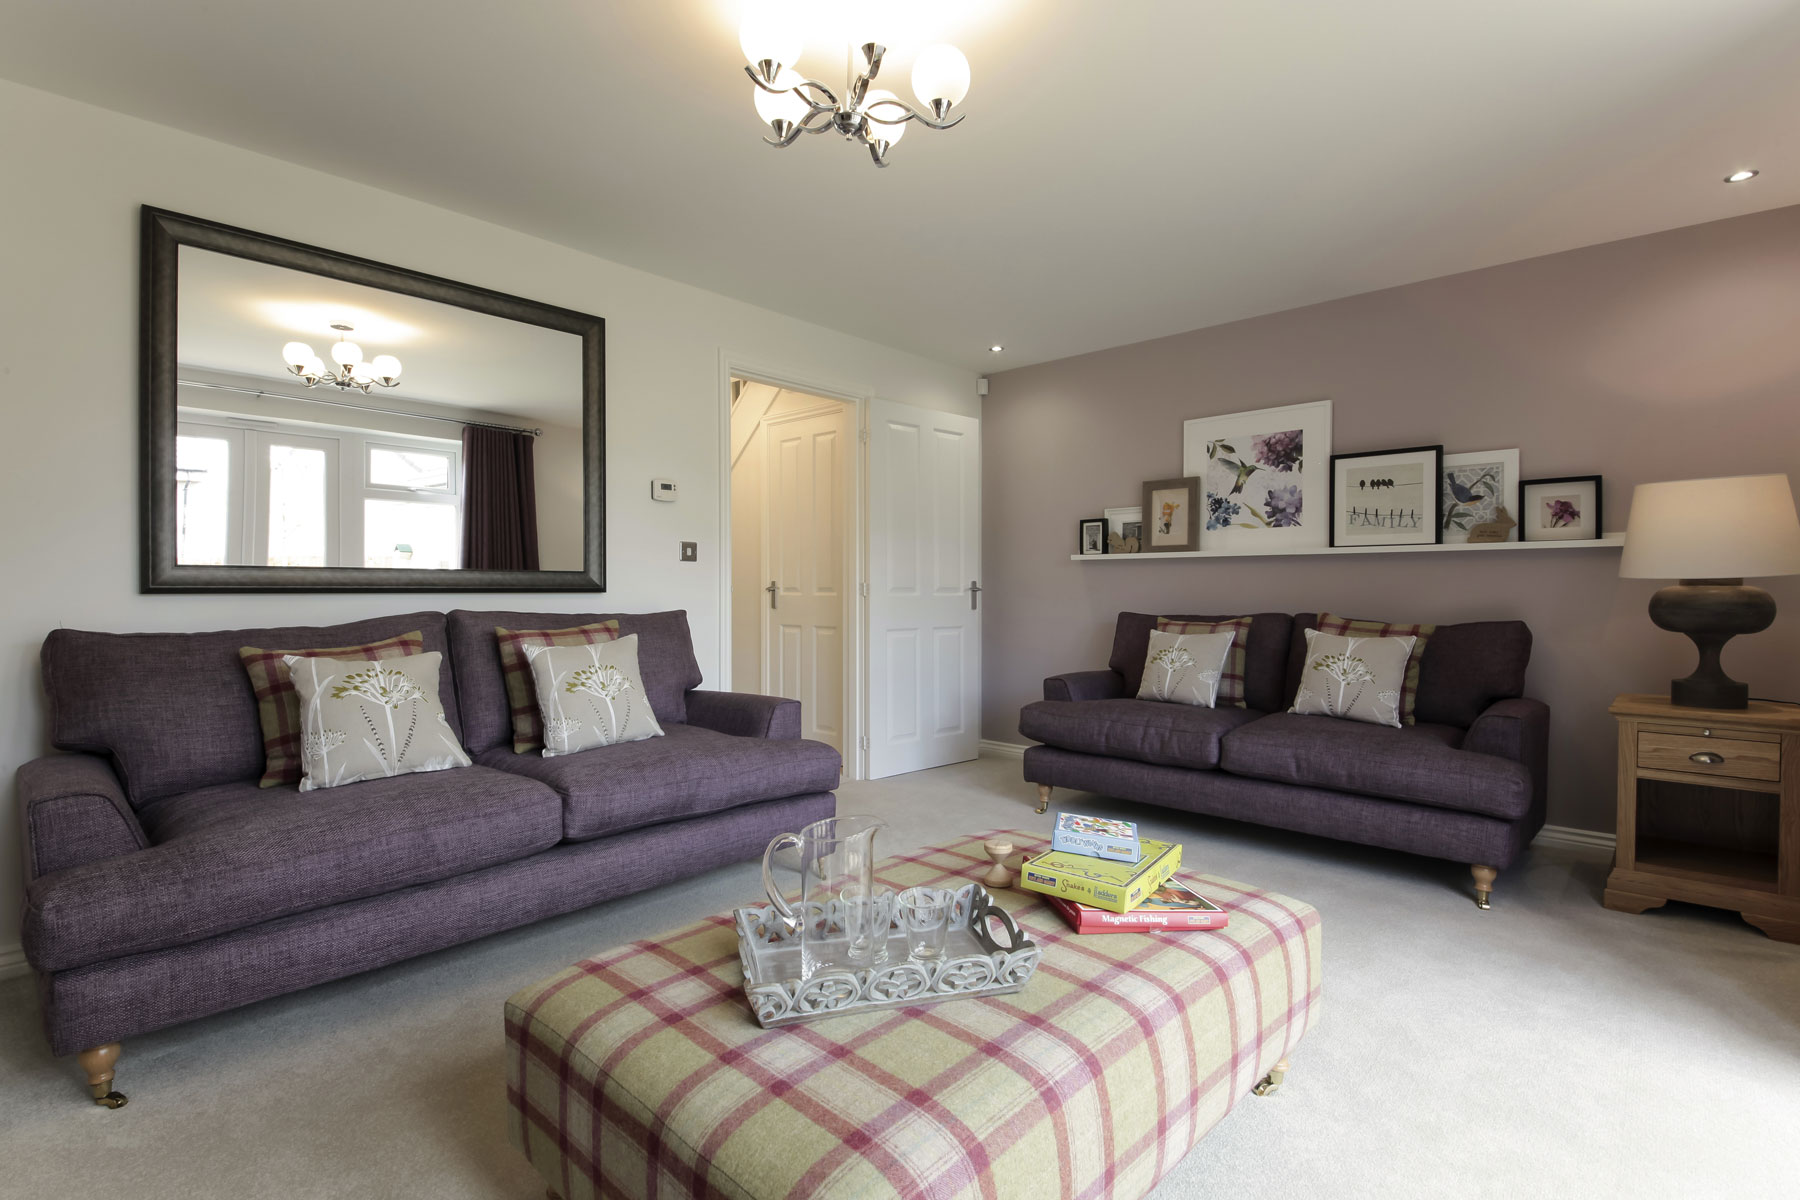 TW Exeter - Rackenford Meadow - Monkford example living room 2